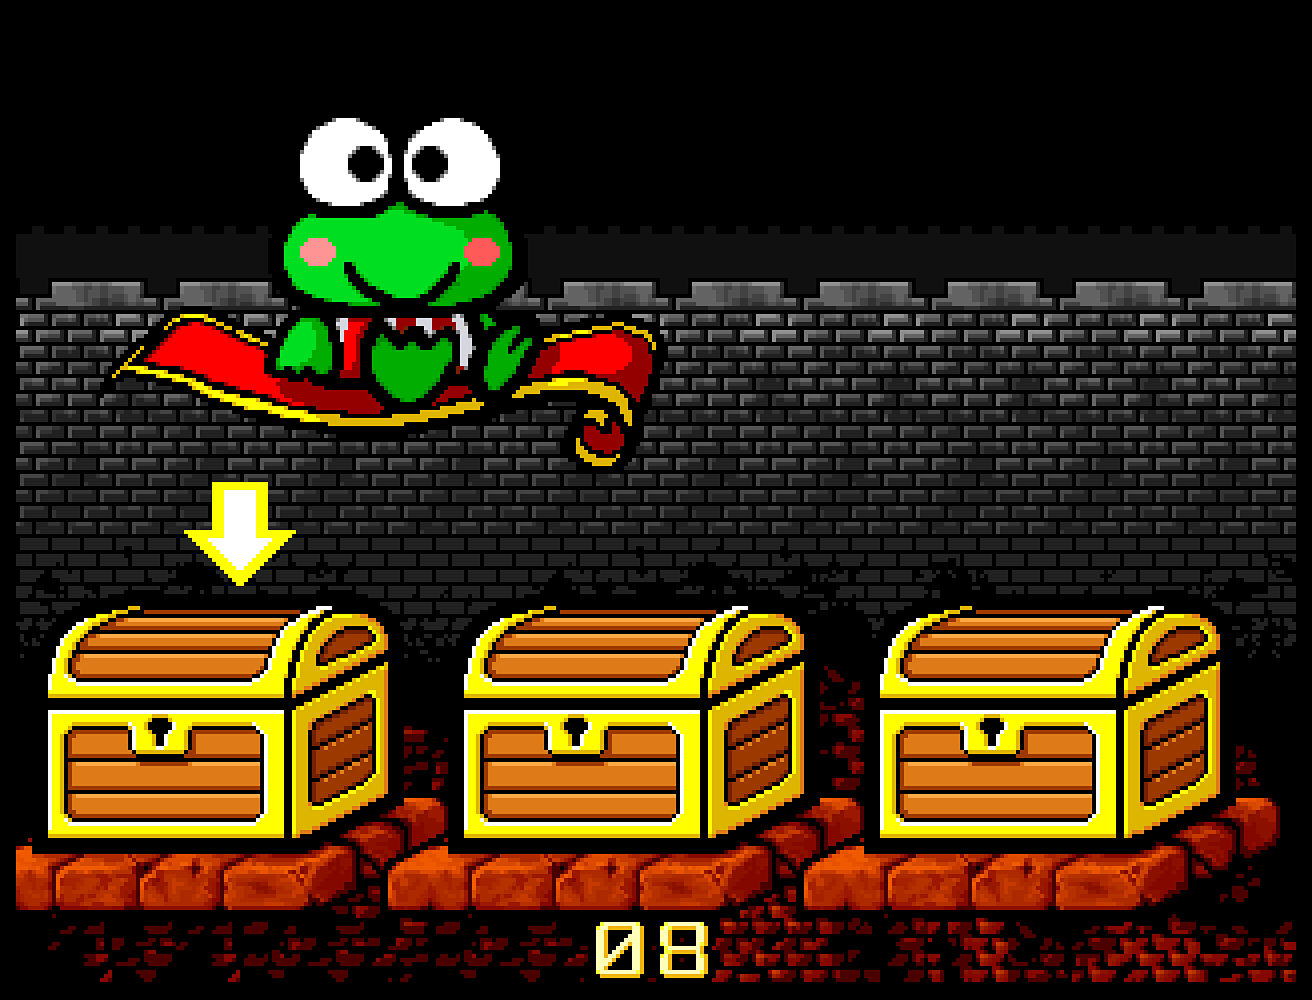 Kero Kero Keroppi's Let's Play Together screenshot